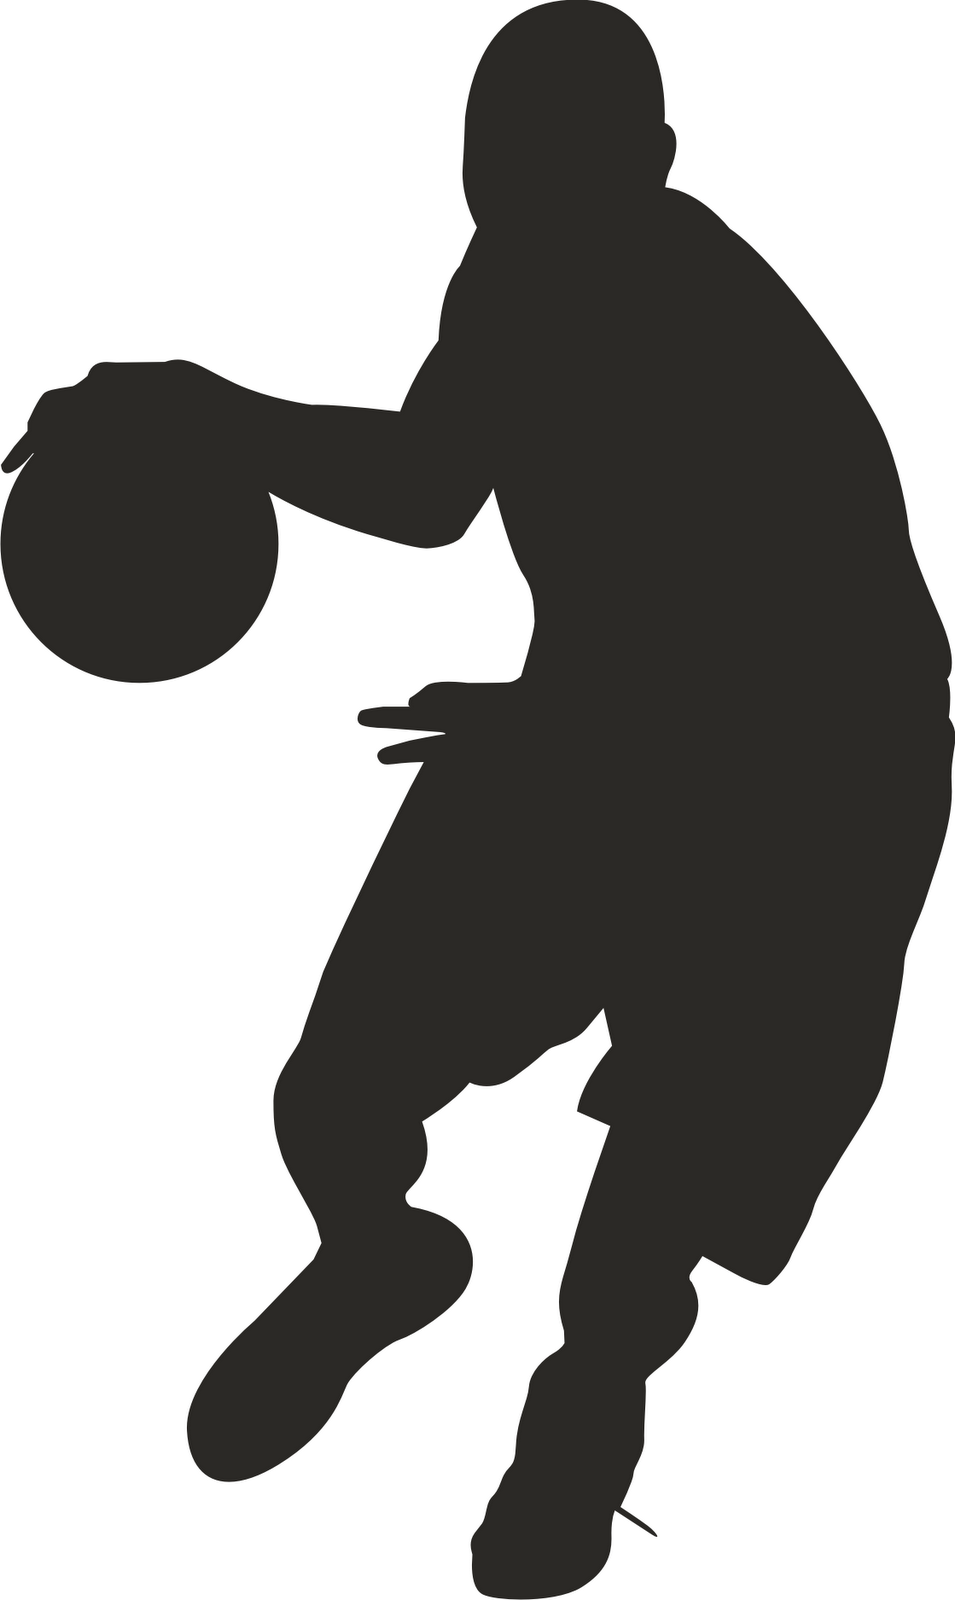 Basketball Player Clipart Black And White | Clipart Panda - Free ...